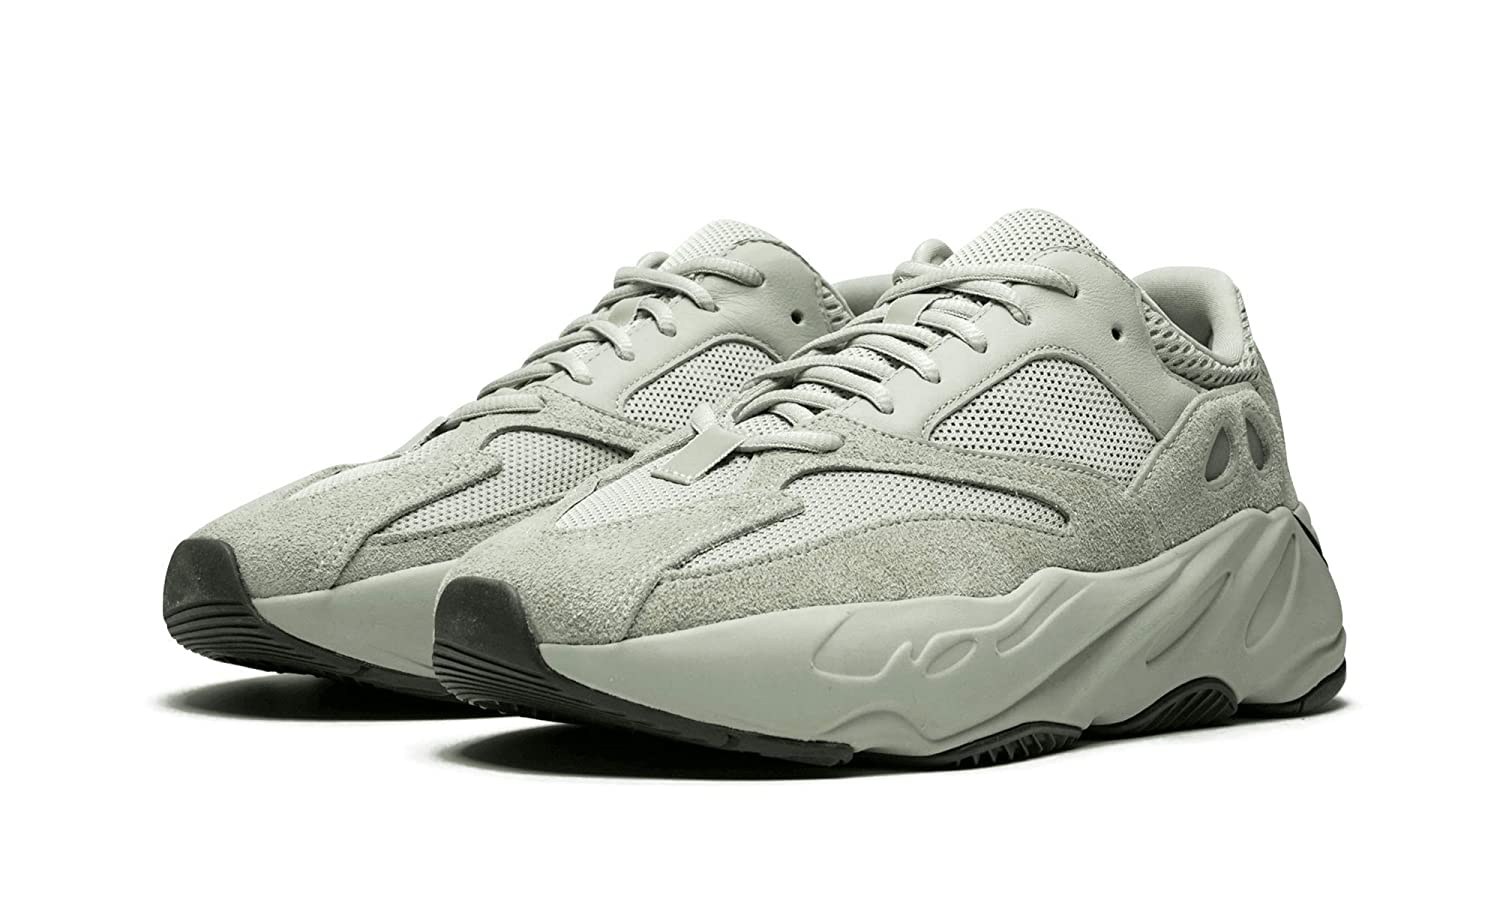 info for 9876e cbd54 Amazon.com | adidas Yeezy Boost 700 (Salt/Salt, 6.5 ...